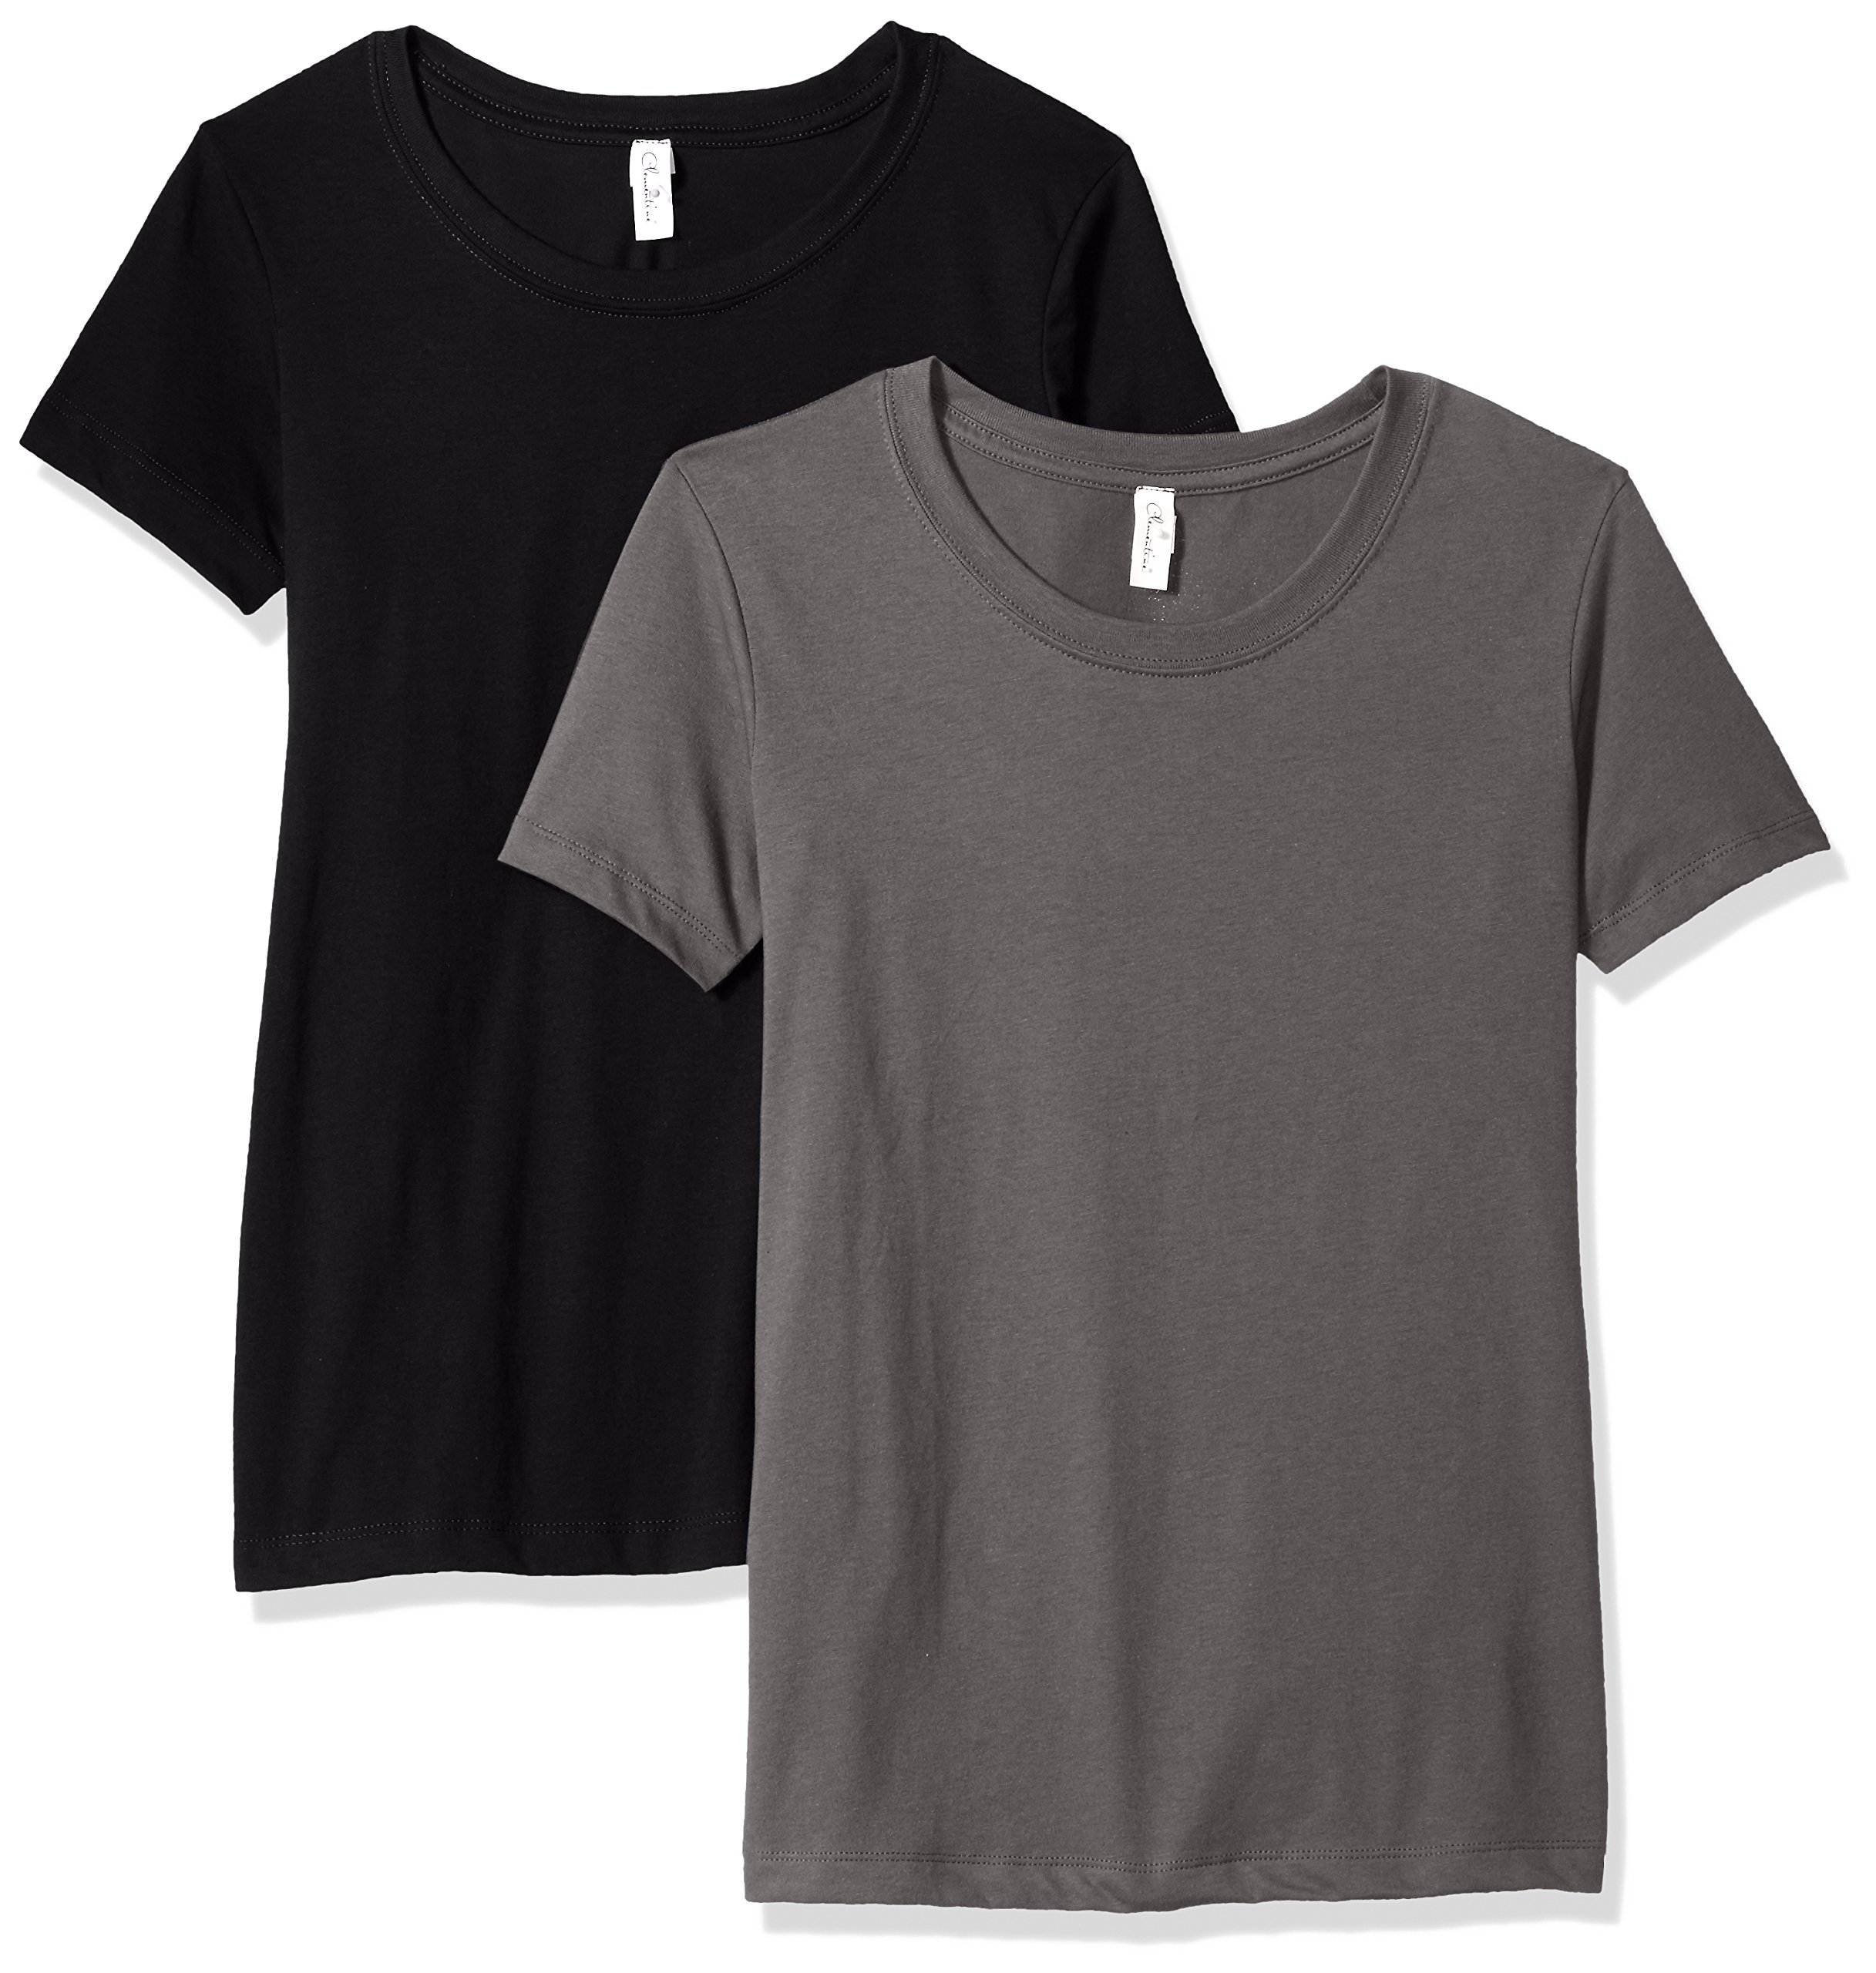 Clementine Apparel Women's Petite Plus Ideal Soft and Trendy Crew Neck Tee (Pack of 2), BlackDark Gray, S